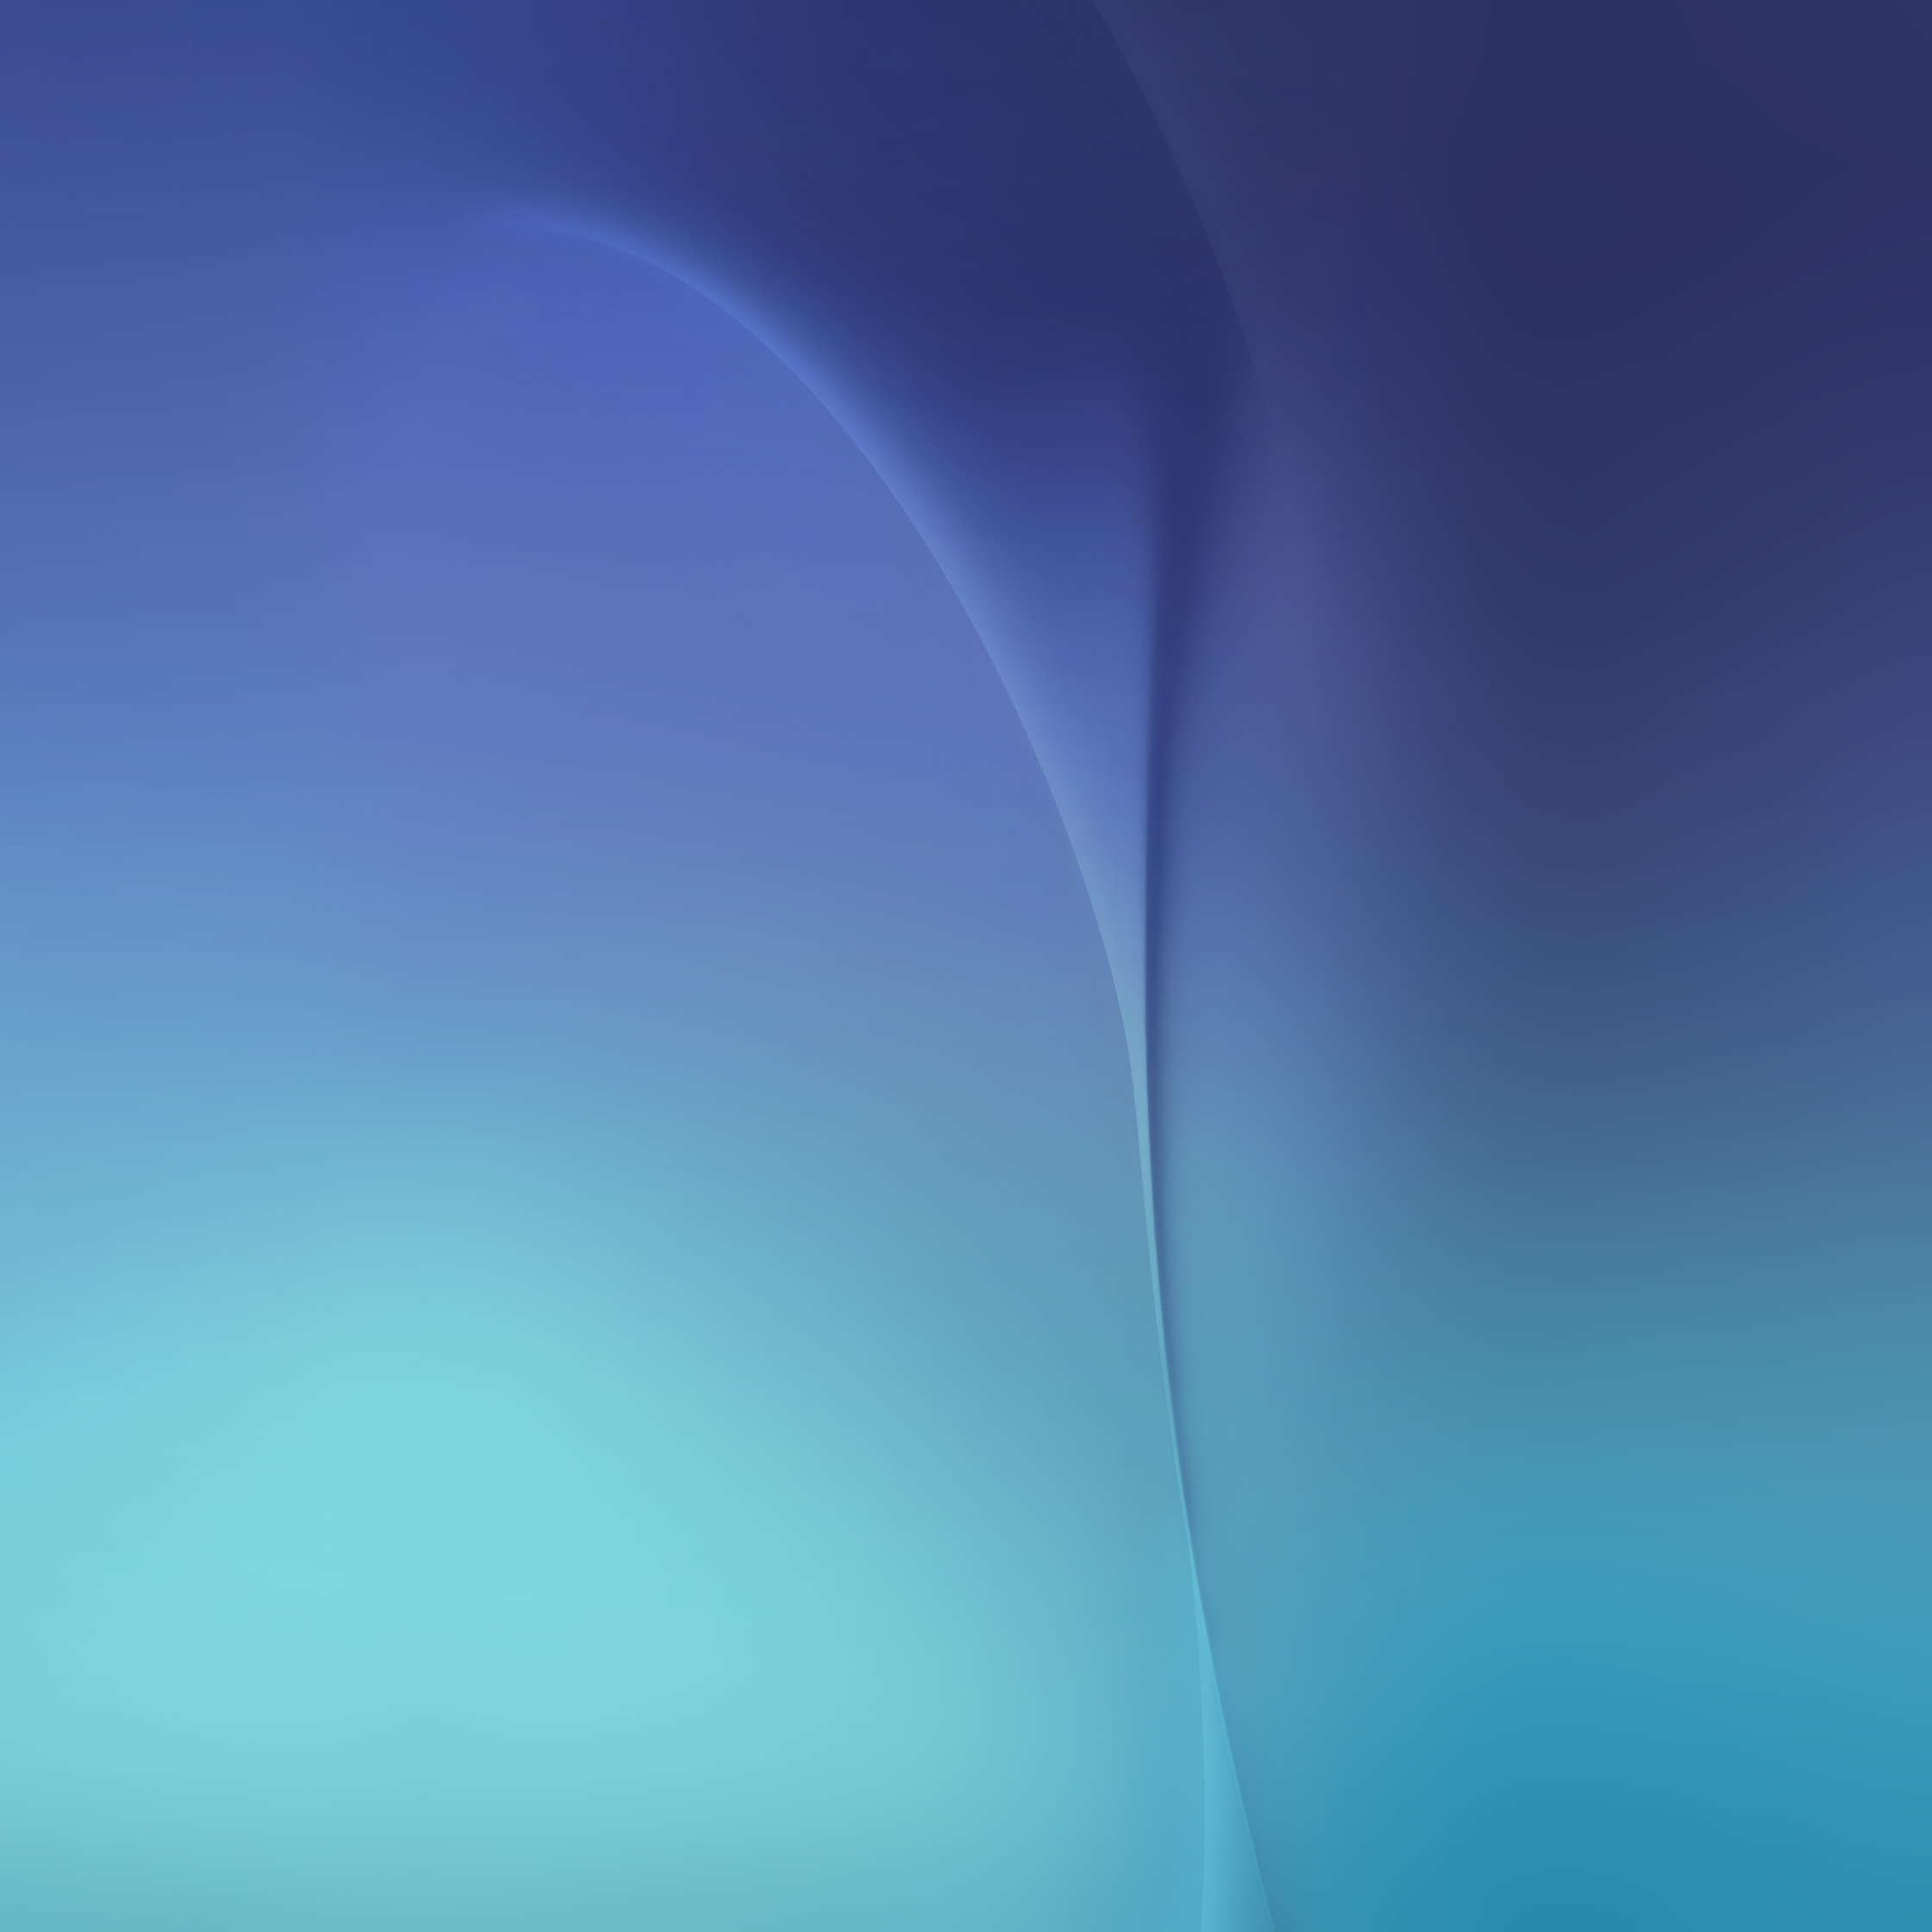 Samsung Galaxy S6, wallpapers